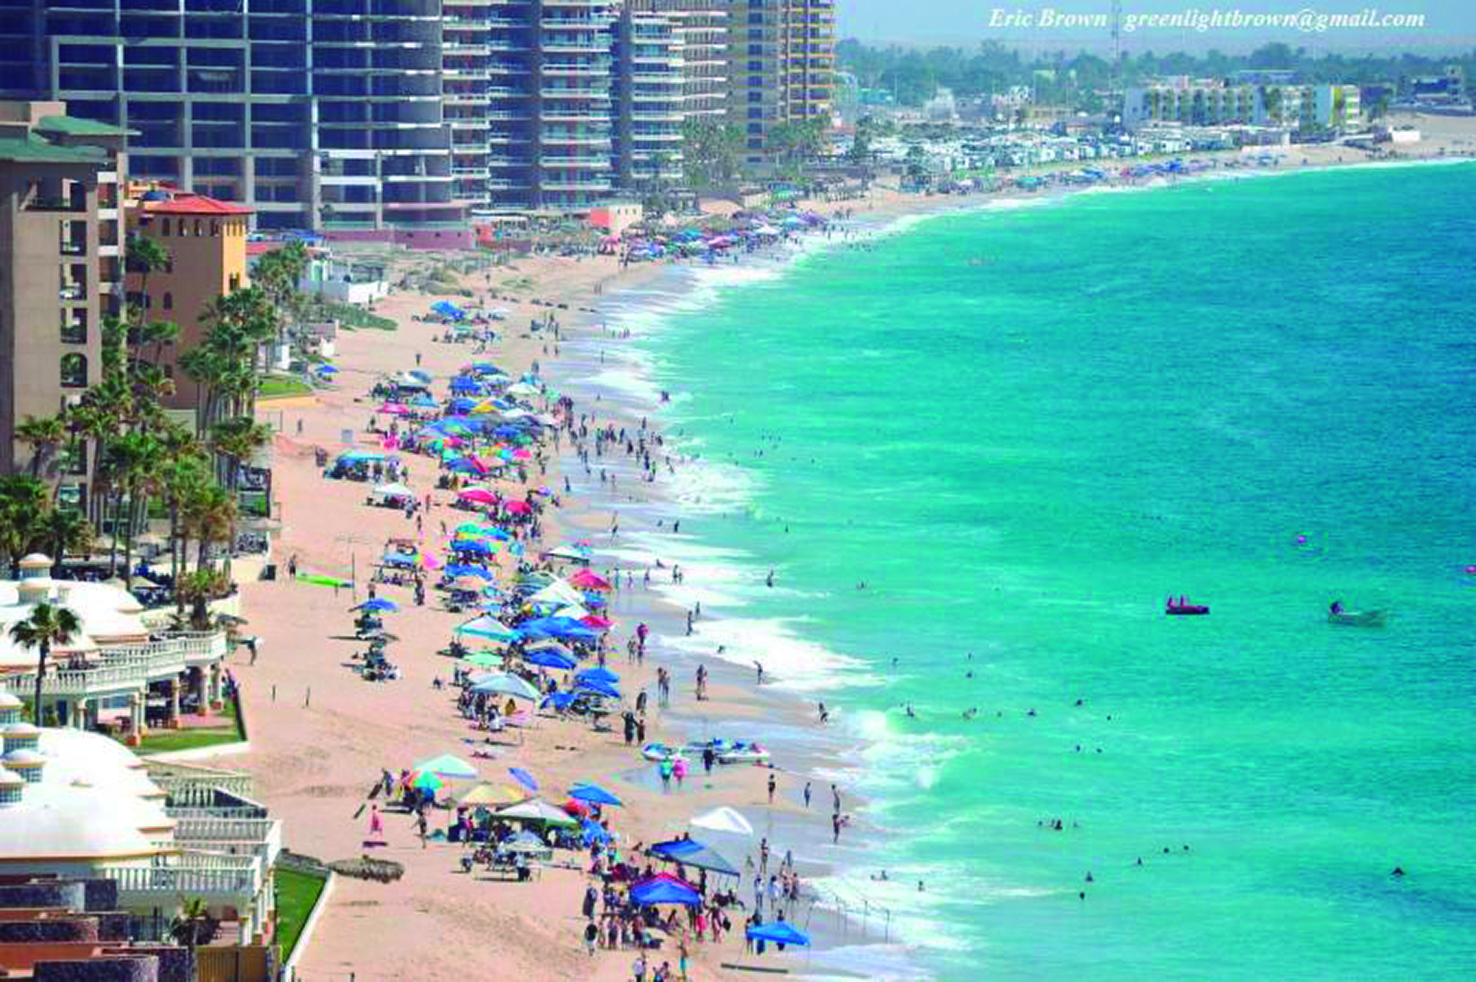 More Than 2.2 Million Foreign and National Tourists Visited the Beaches of Puerto Peñasco During 2019